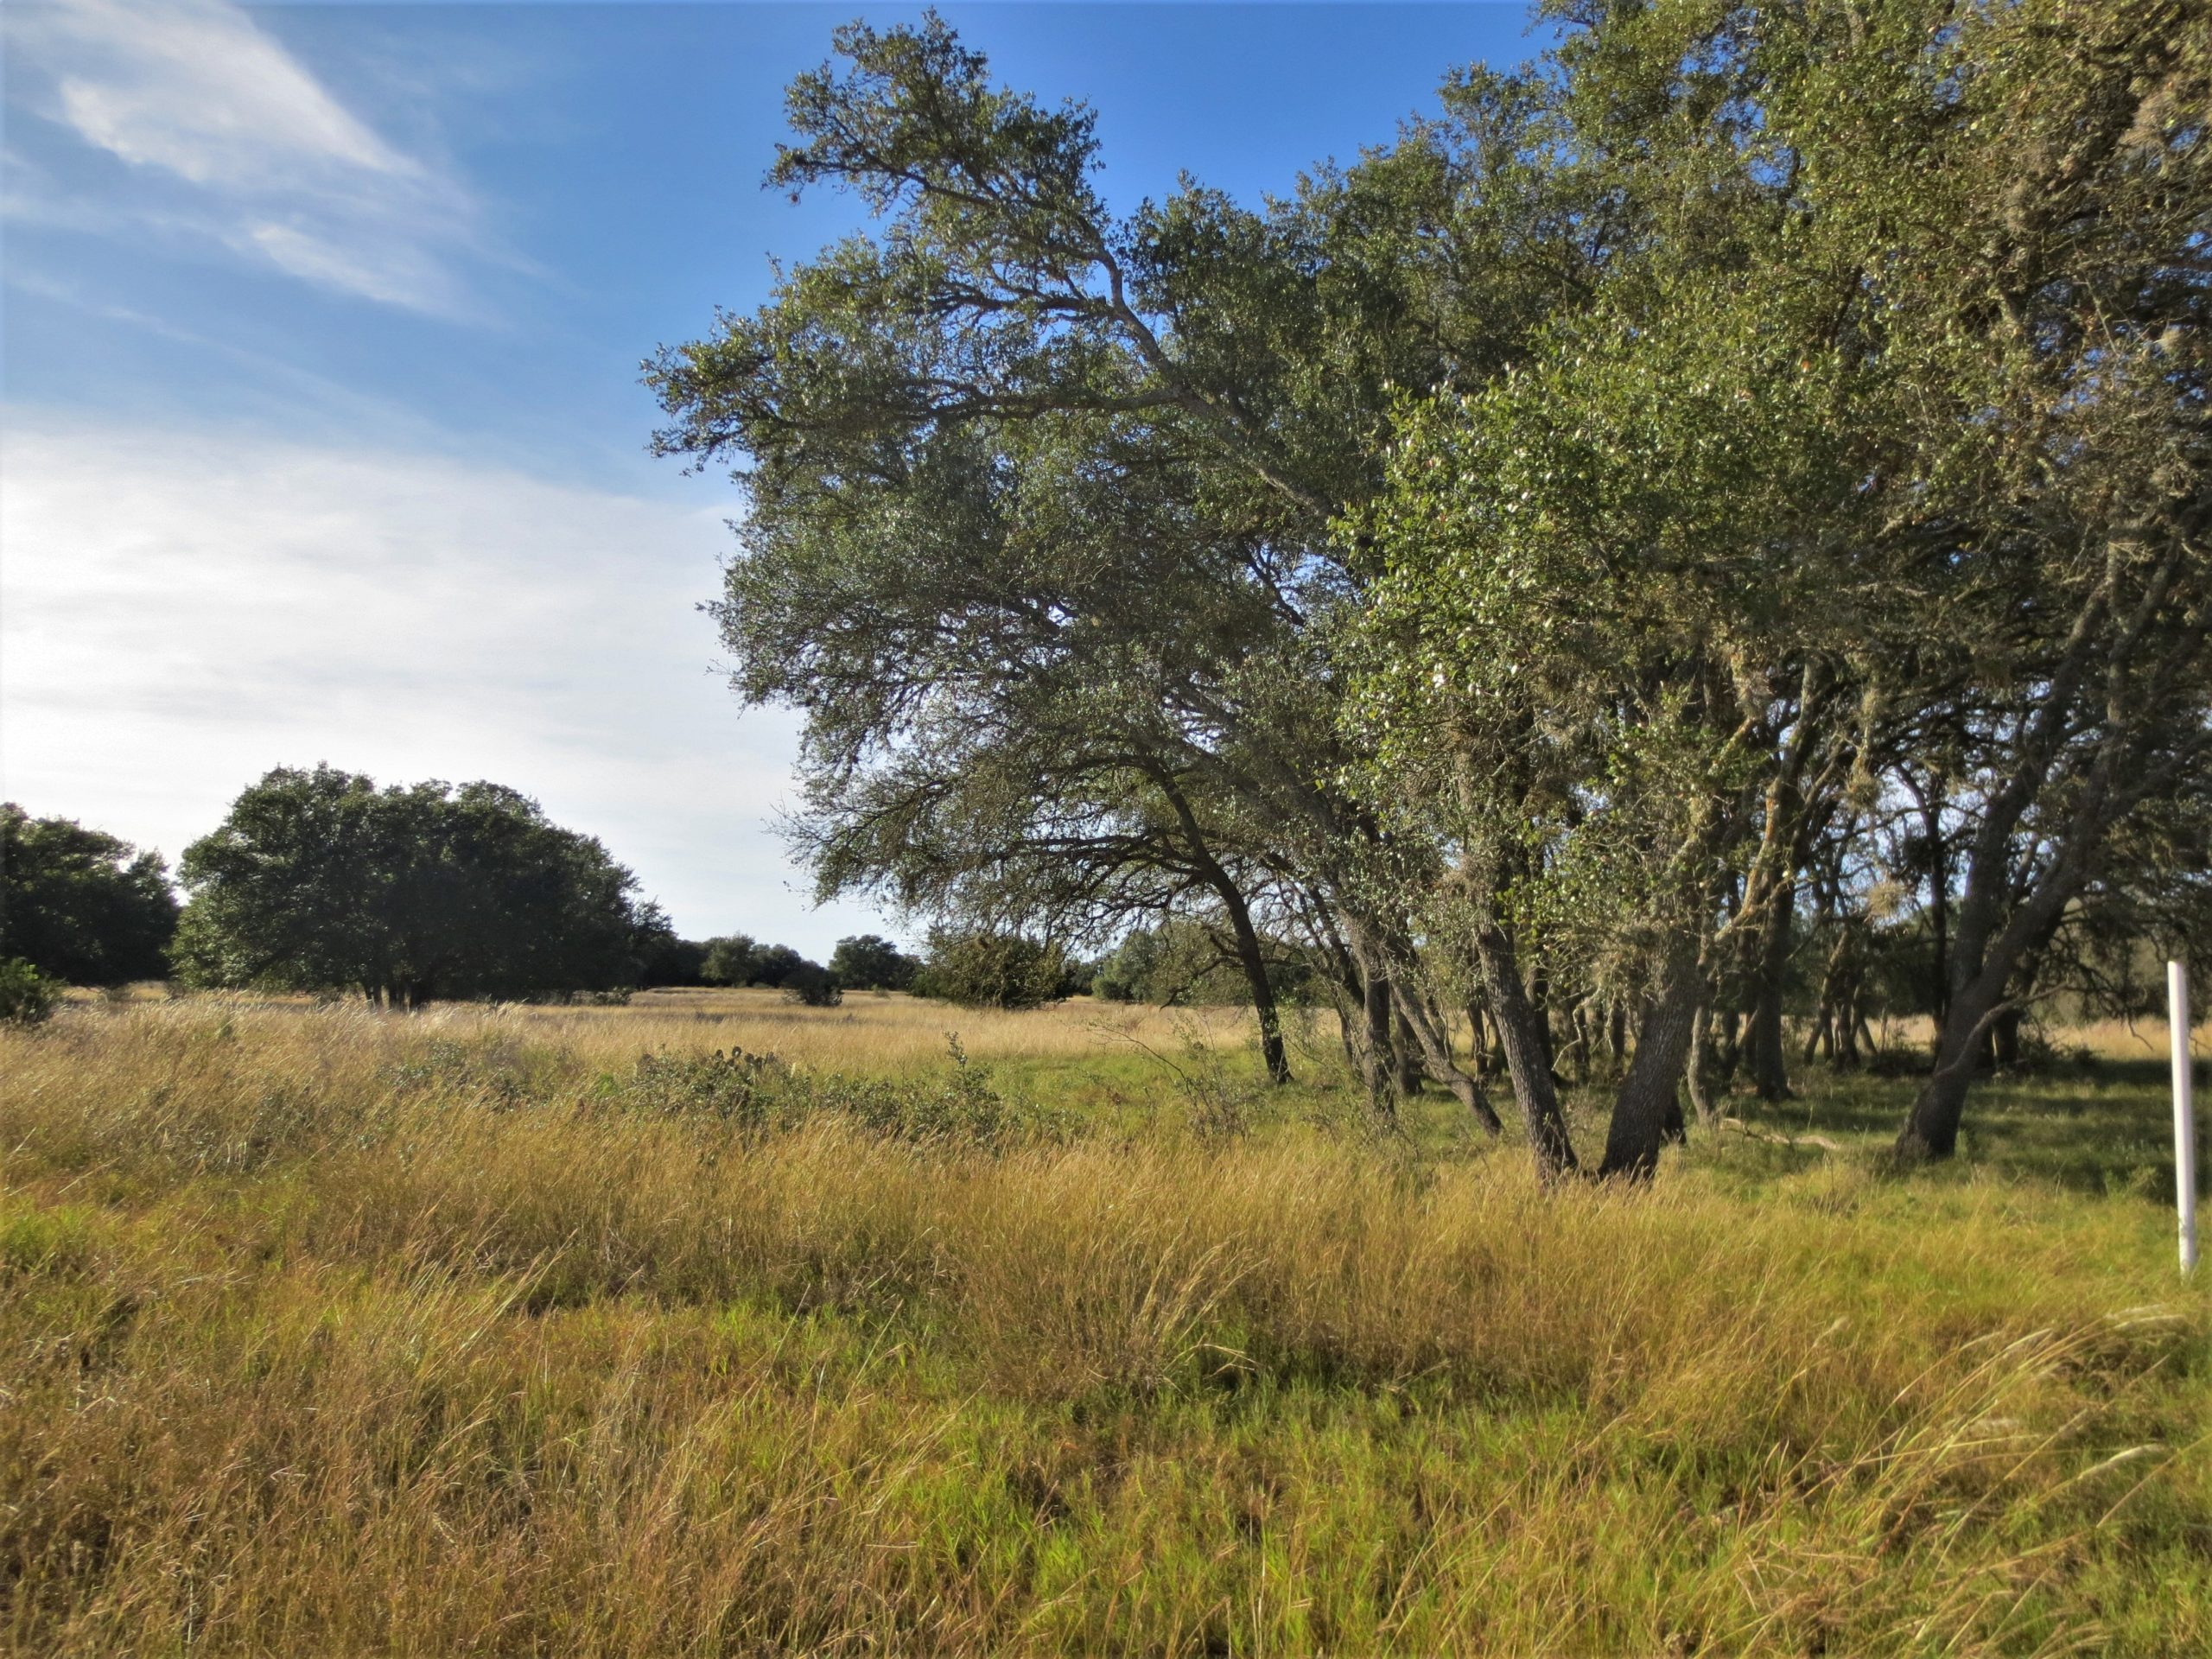 4 ACRES in Bridlegate Ranch. L0276 Call Gail Stone Realty in Bandera, TX. 830-796-4640